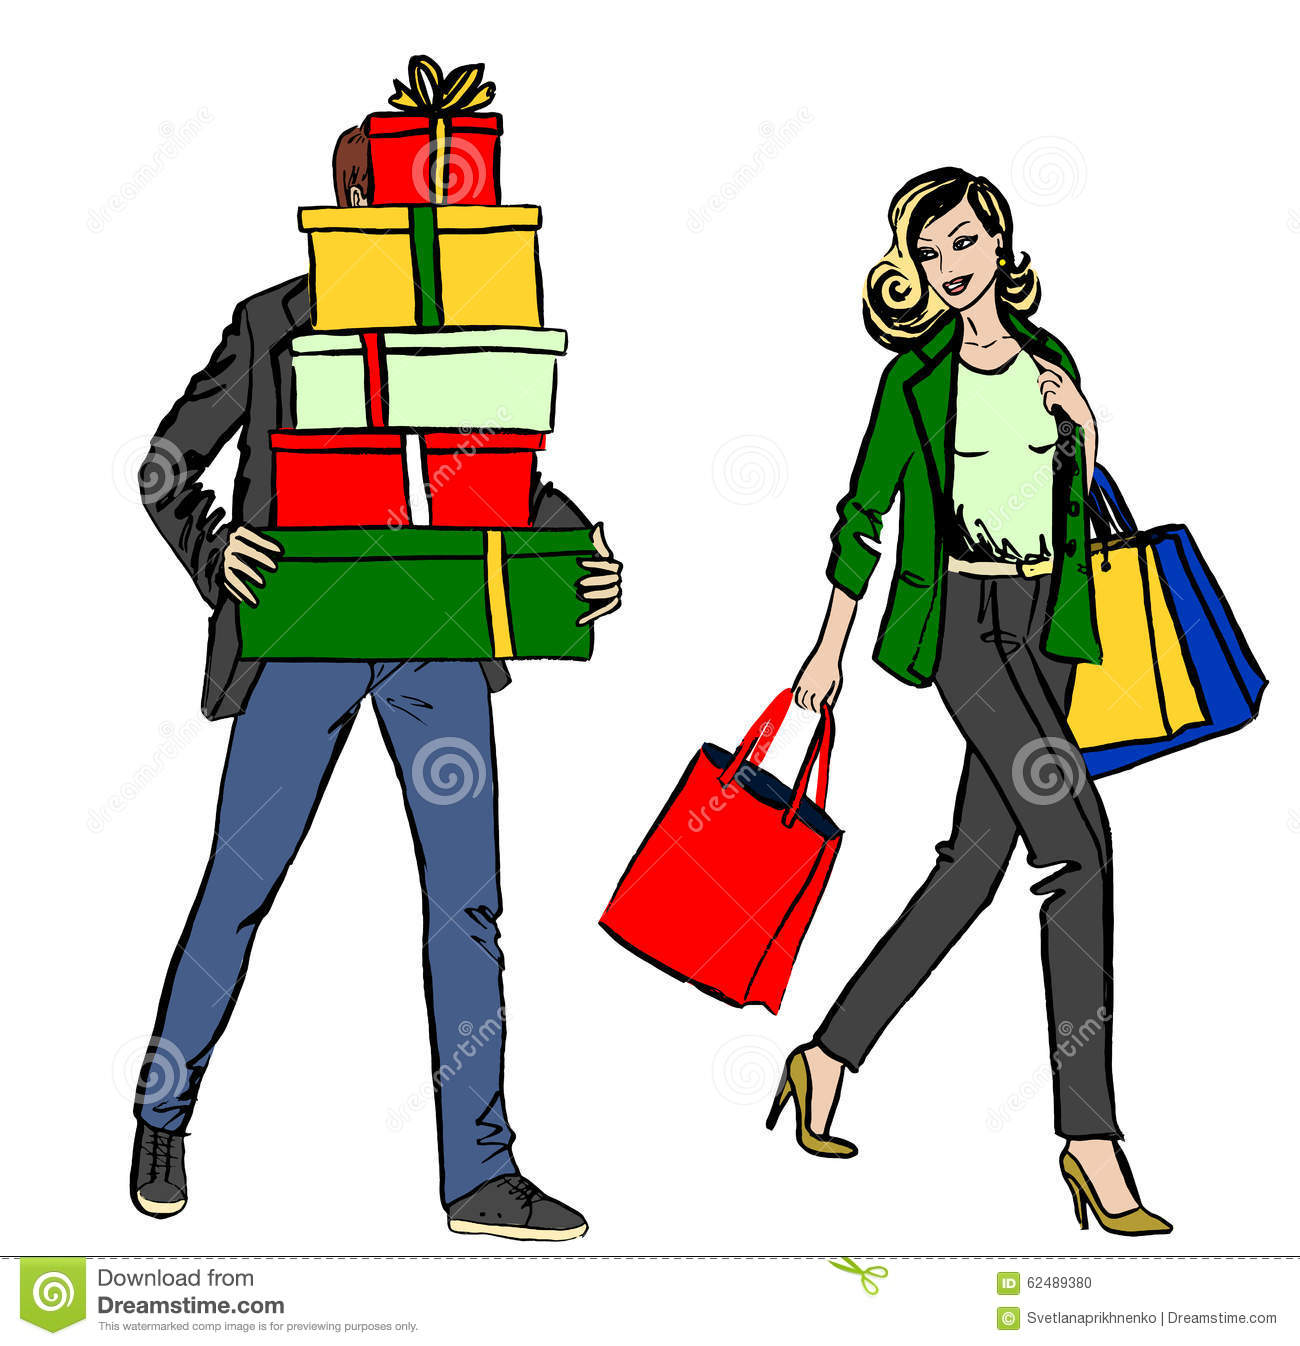 woman-man-shopping-bag-fashion-illustration-happy-smiling-wit-ink-hand-drawn-sketch-white-clip-art-62489380.jpg